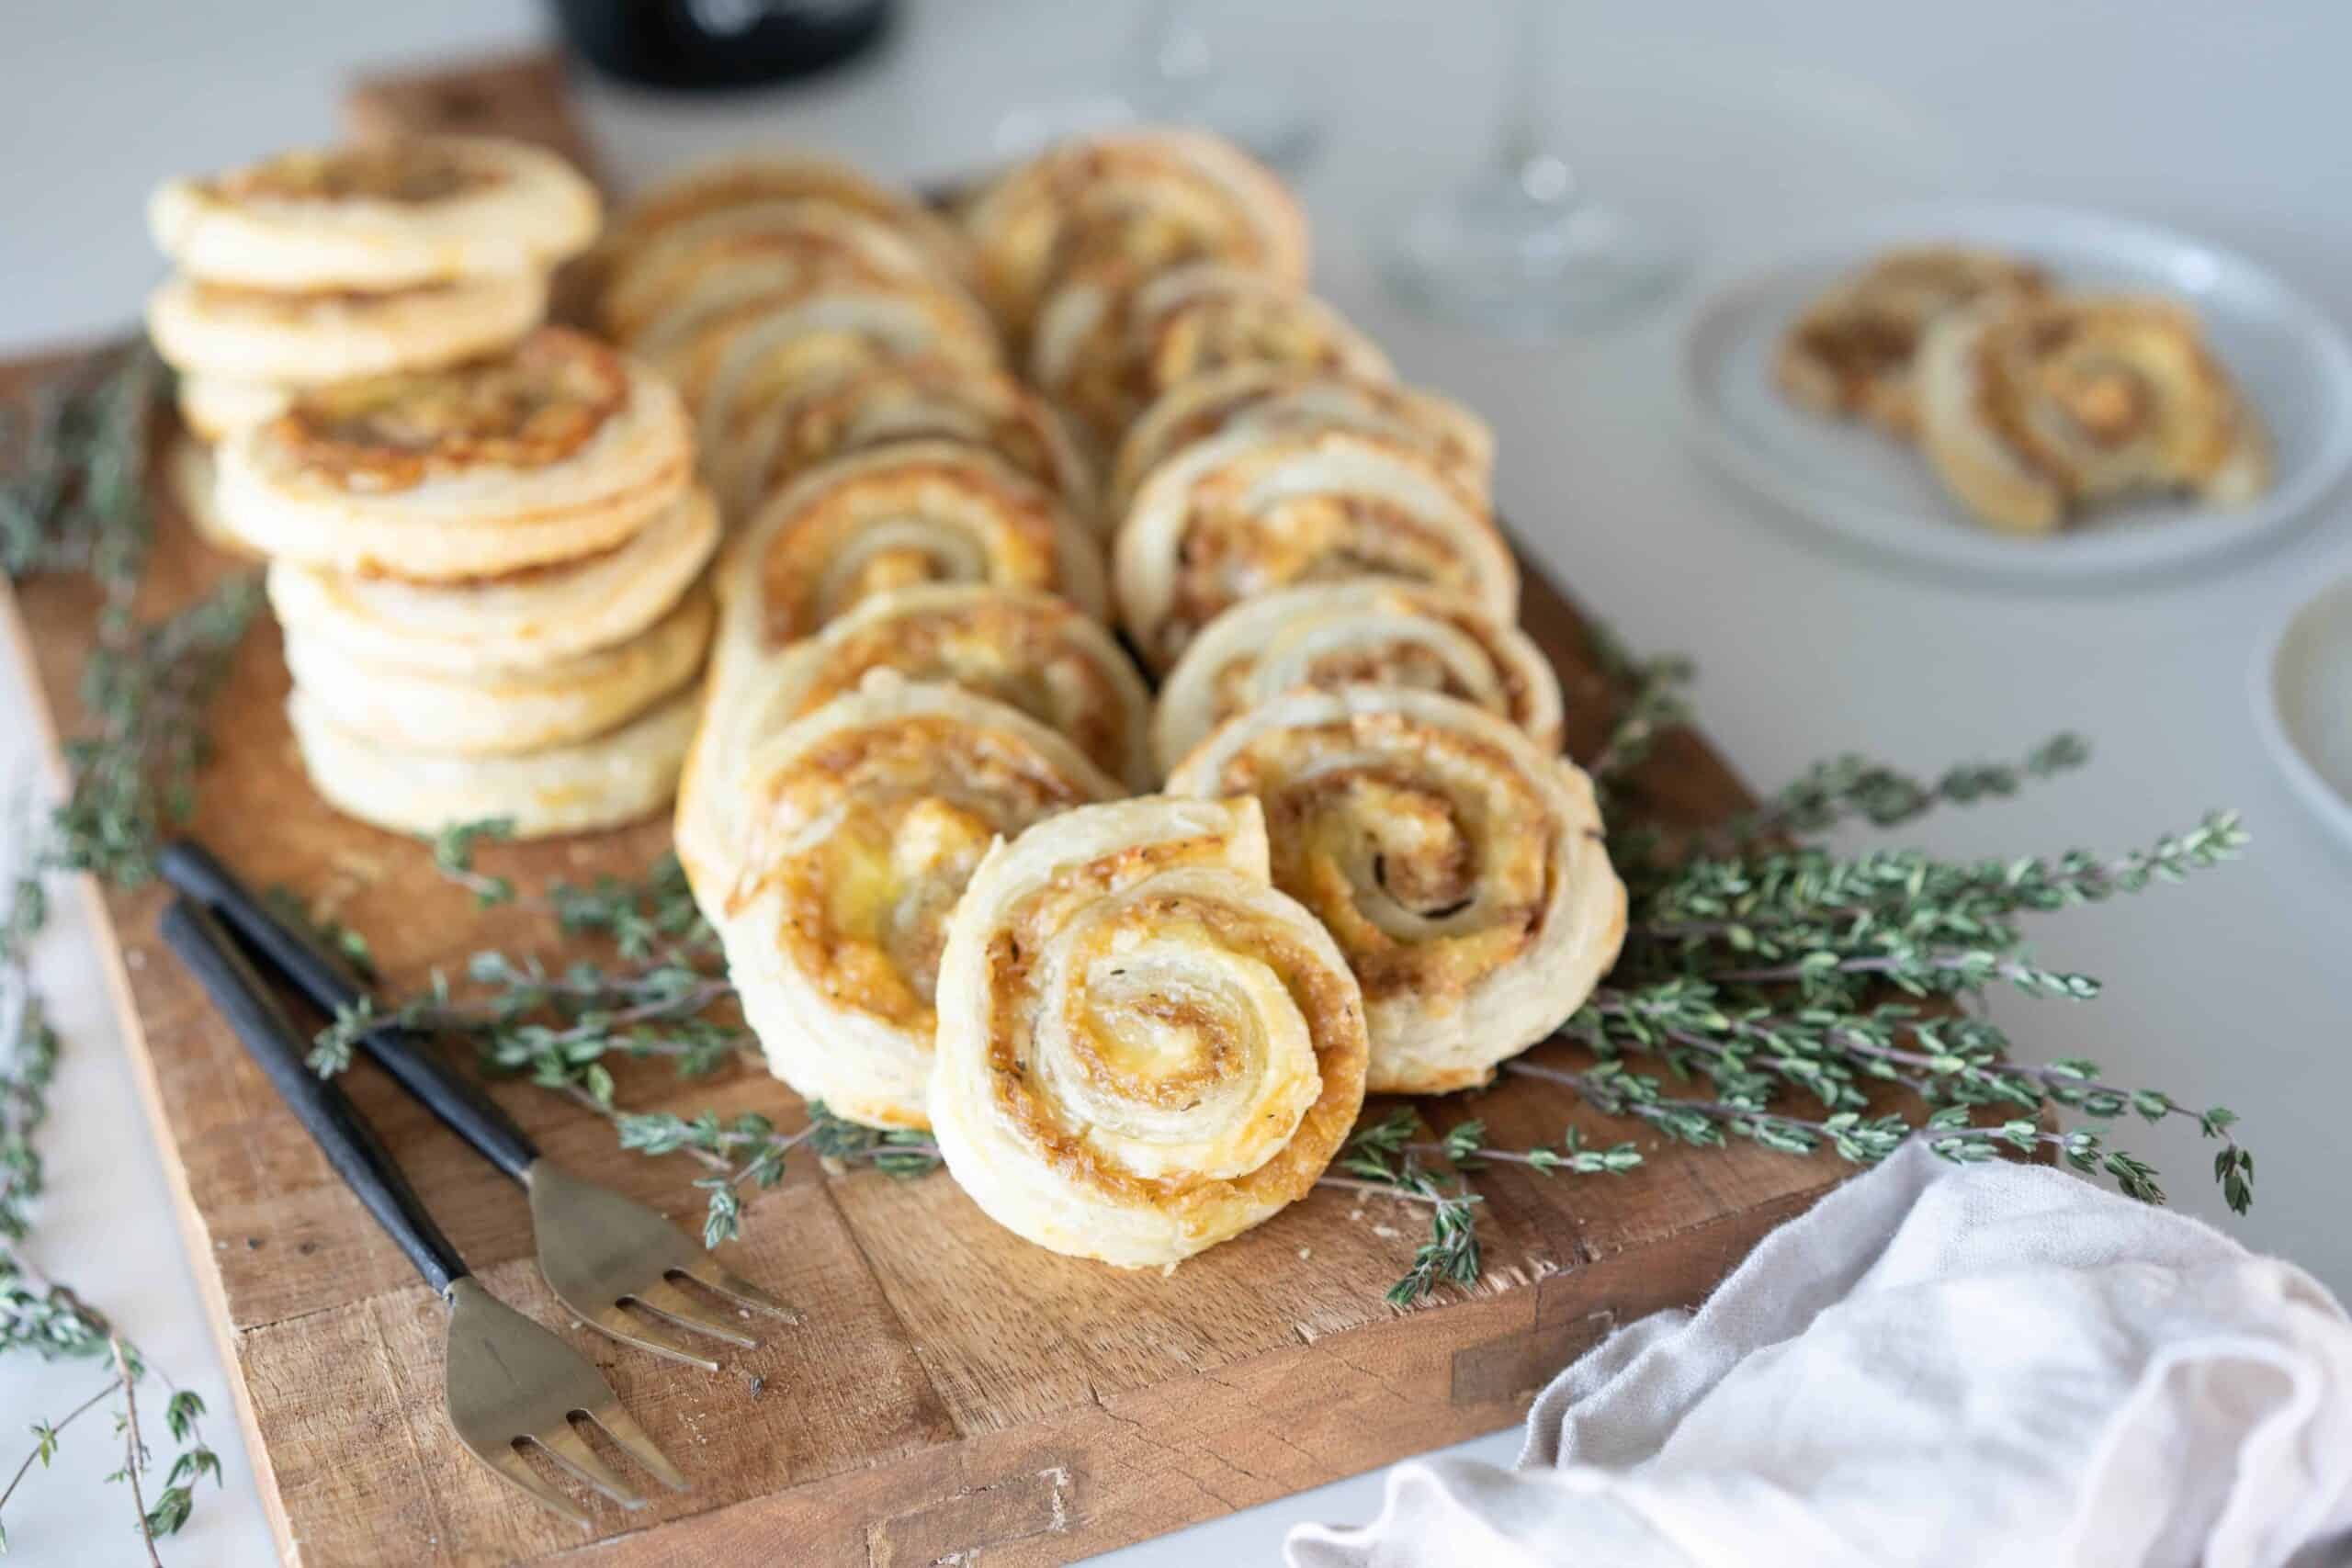 French Onion Soup Spirals on a wooden cutting board